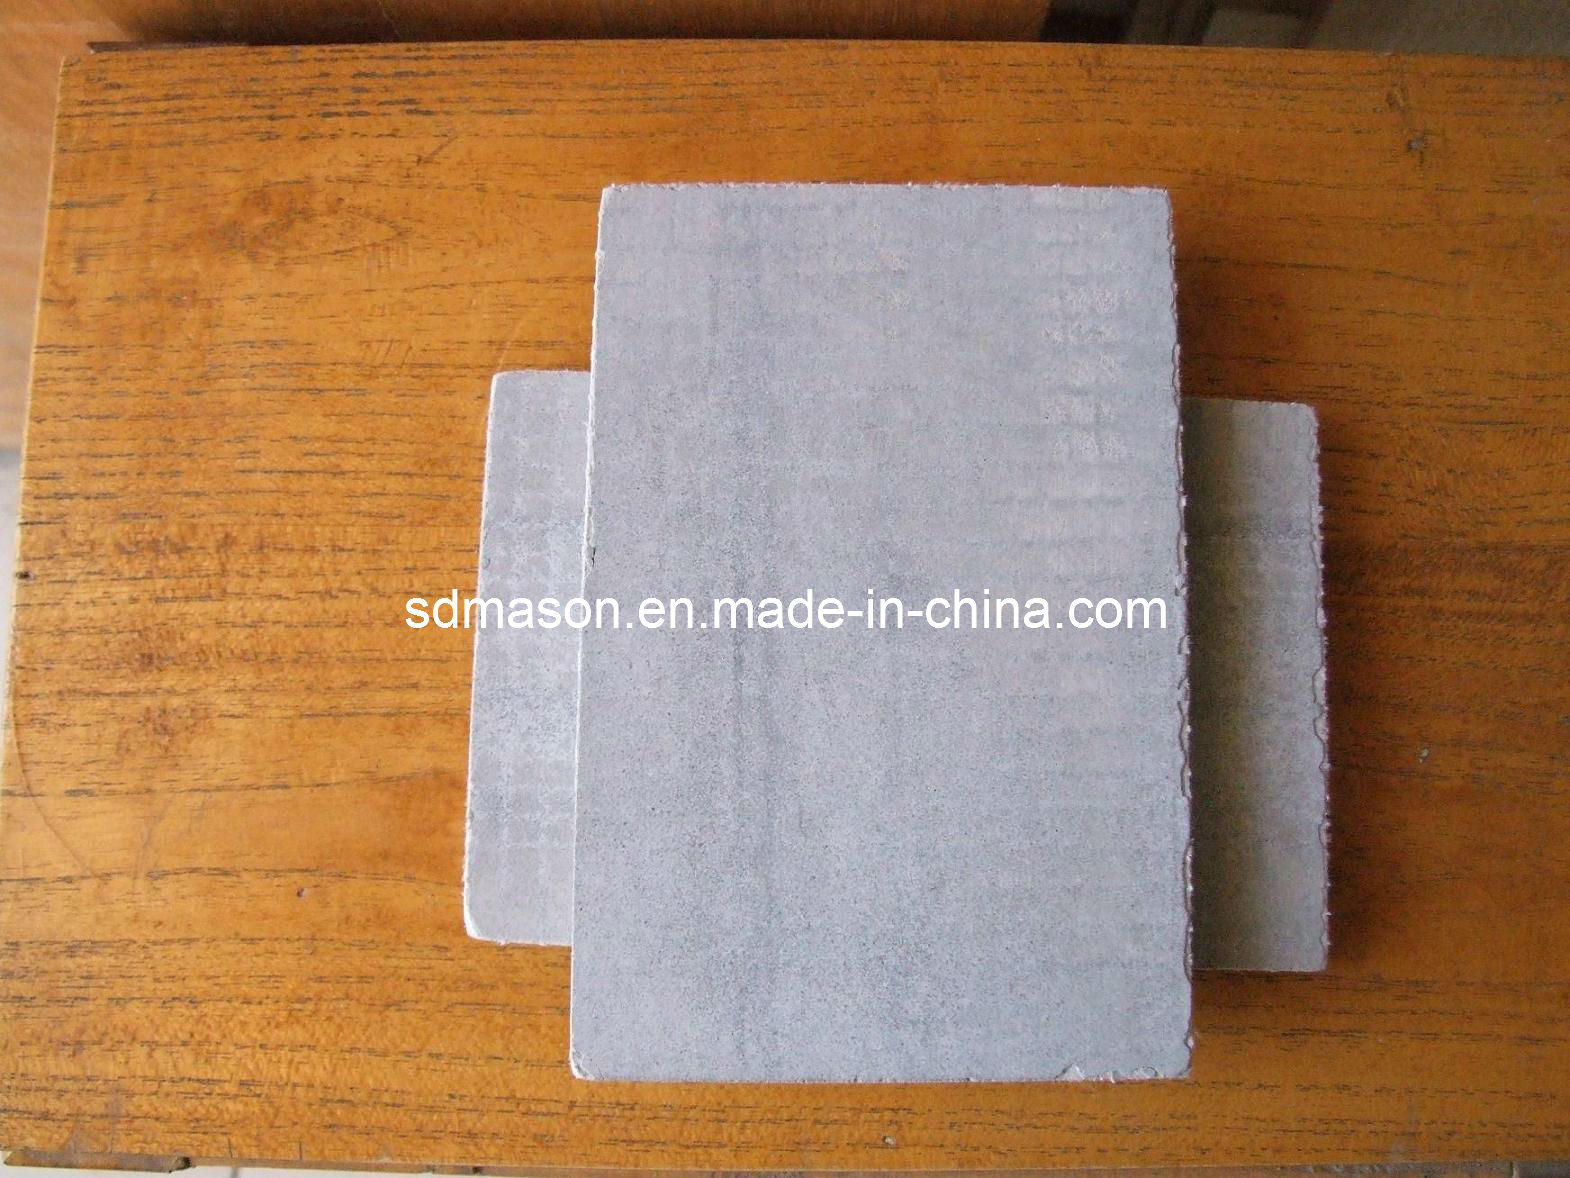 Top Quality Magnesium Oxide Fireproof Board (4′X8′)